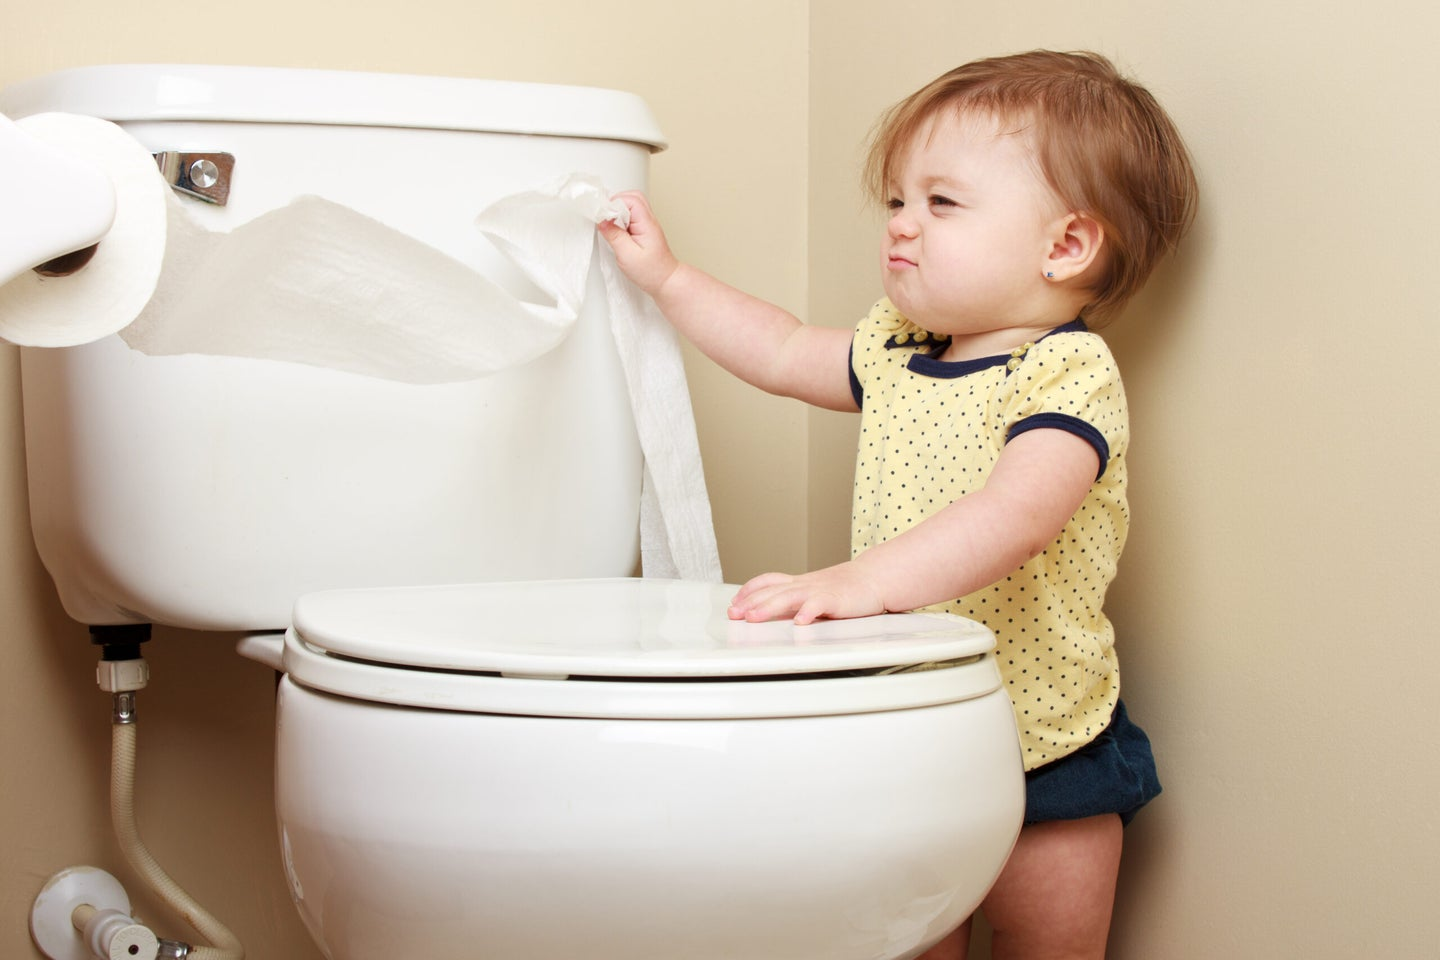 11 stories about poop to fix your crappy day